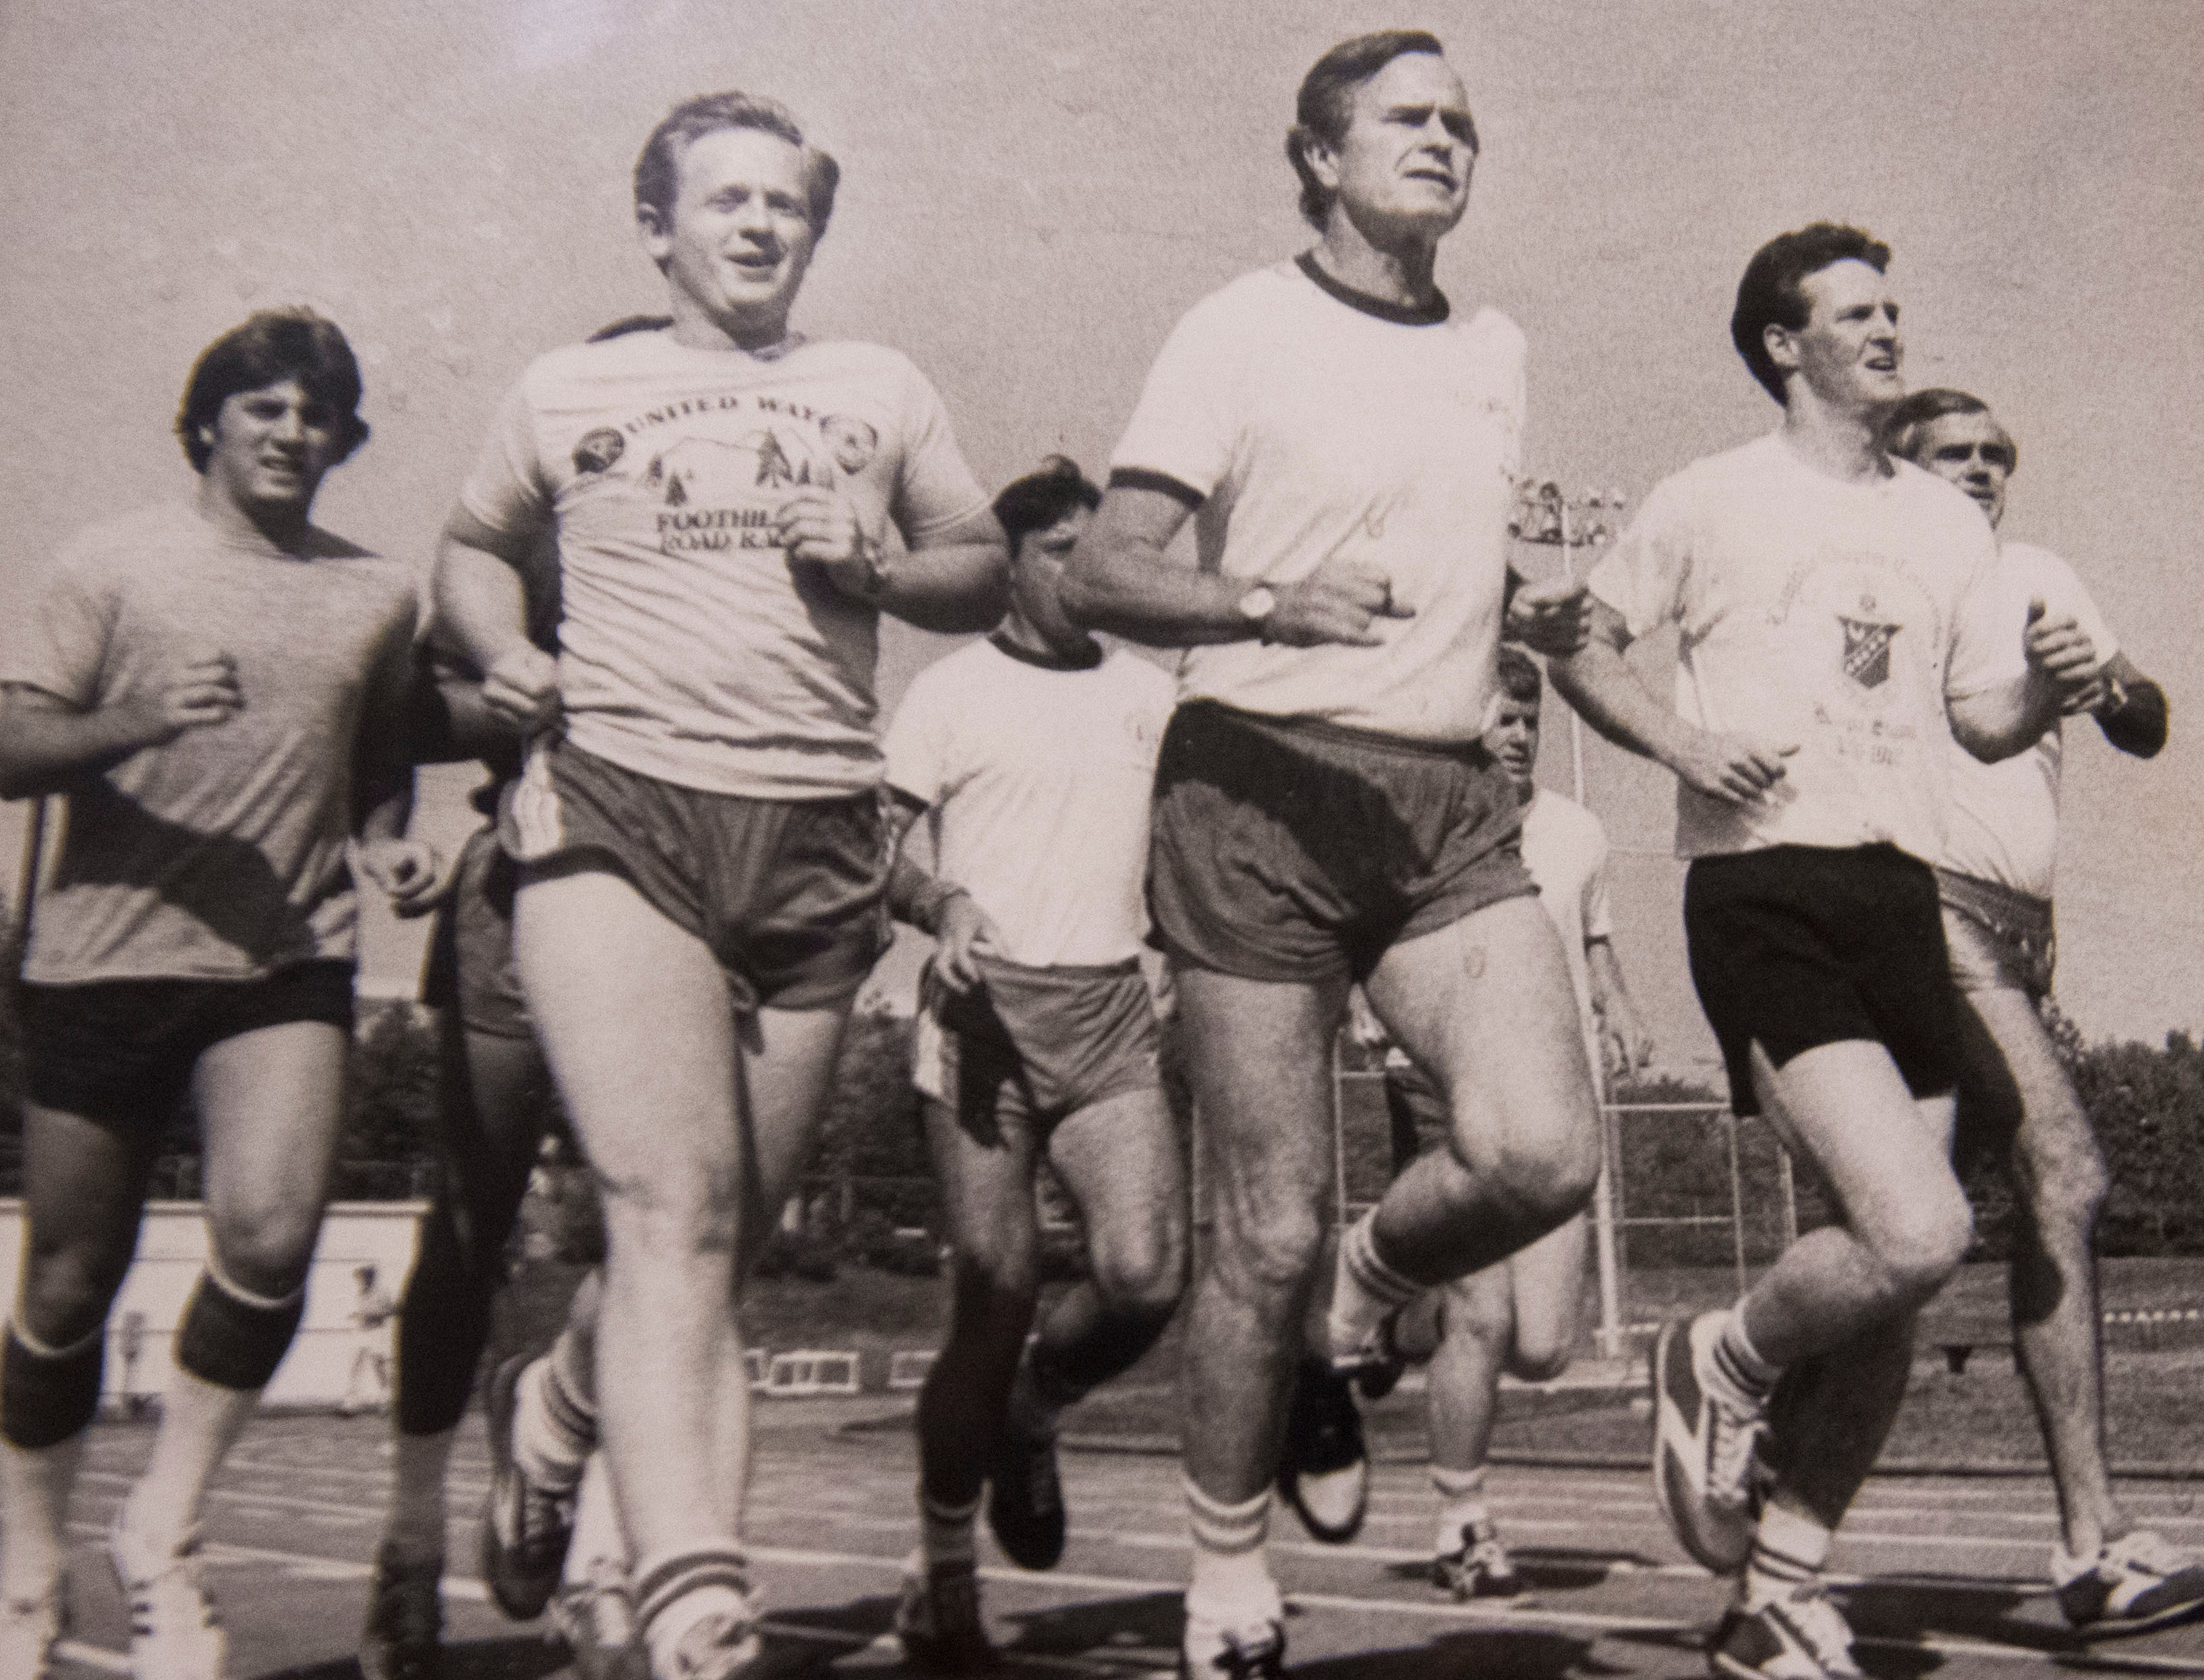 Victor Ashe and state Rep. Jimmy Hudson, right, jog at UT's Tom Black Track with presidential candidate George H.W. Bush and some Secret Service during Bush's May 1980 campaign stop in Knoxville. Months later, Bush would join the ticket with Ronald Reagan and be elected vice president.